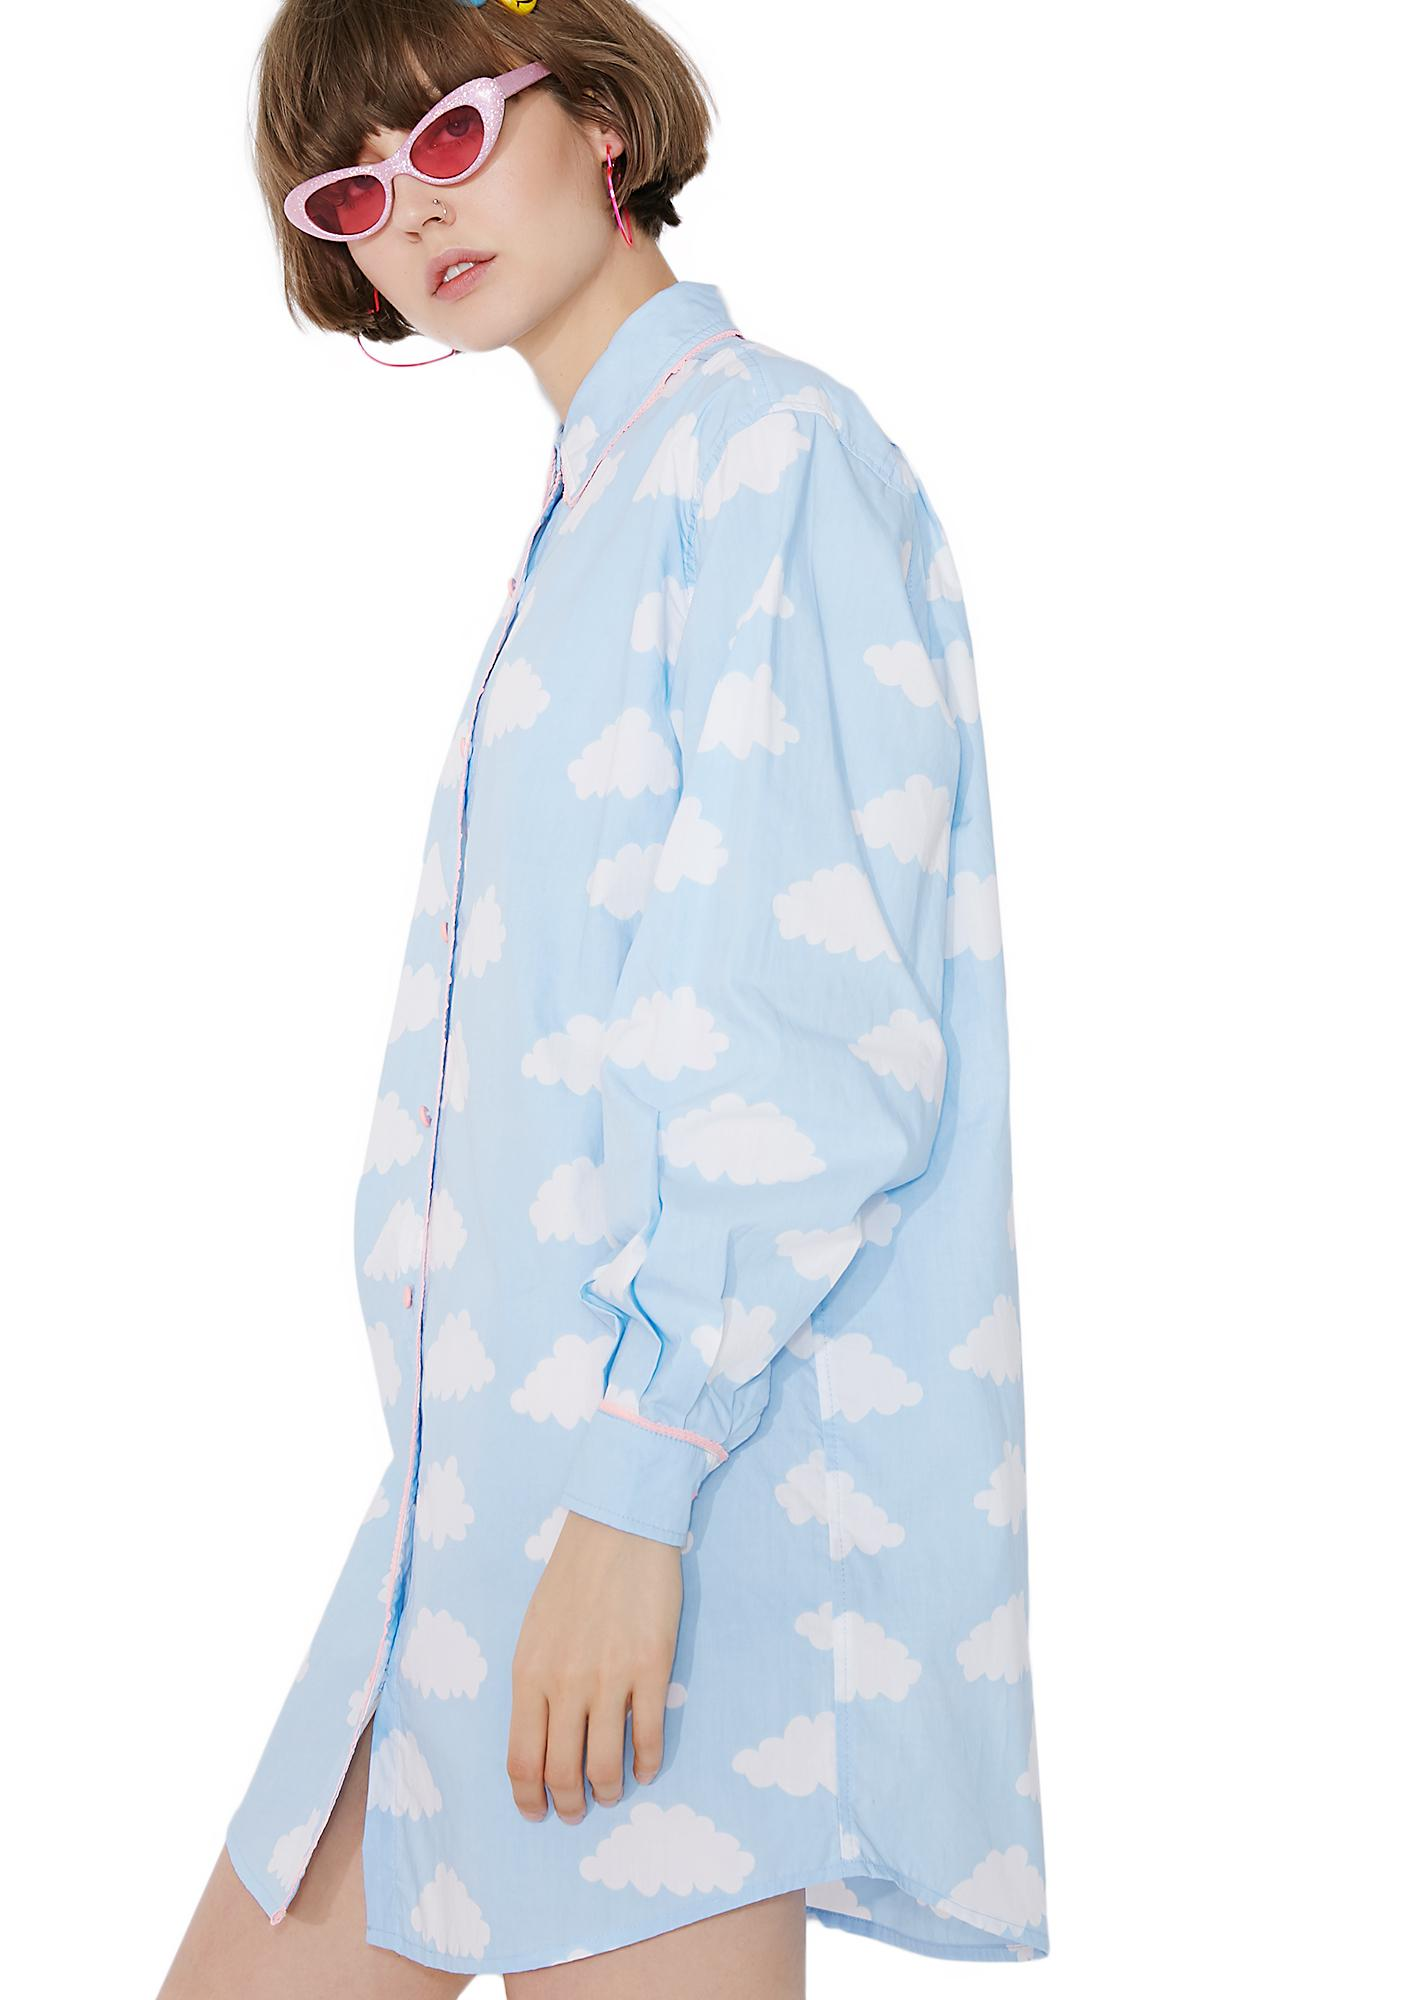 Lazy Oaf Sometimes Cloudy Shirt